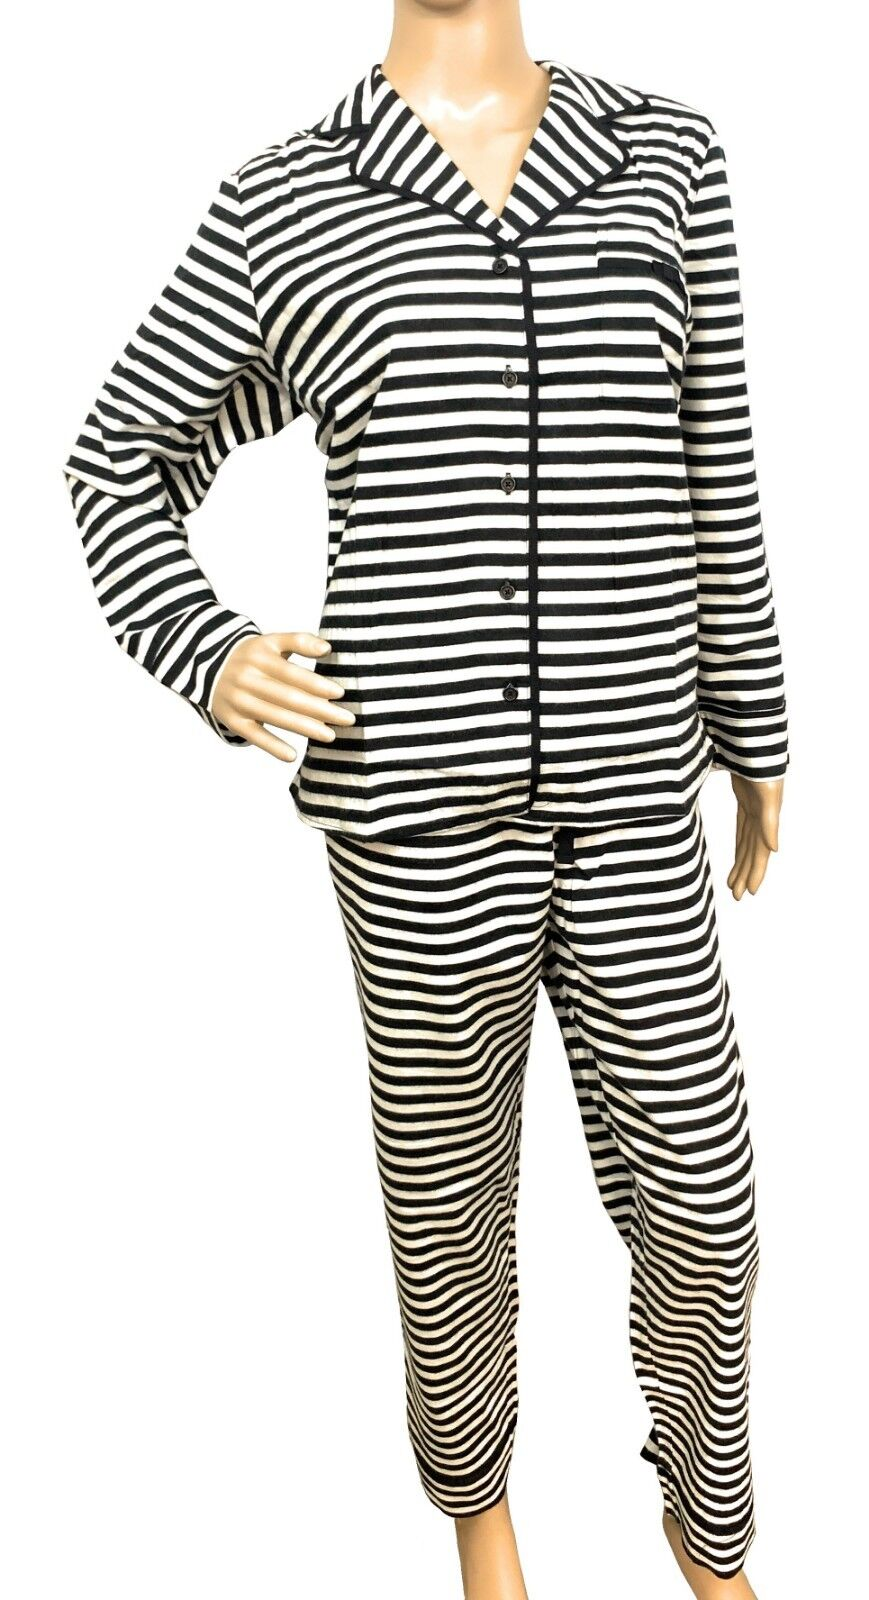 Kate Spade Pajama Set Classic Brushed Twill Black & White Stripe (Select Size) Clothing, Shoes & Accessories